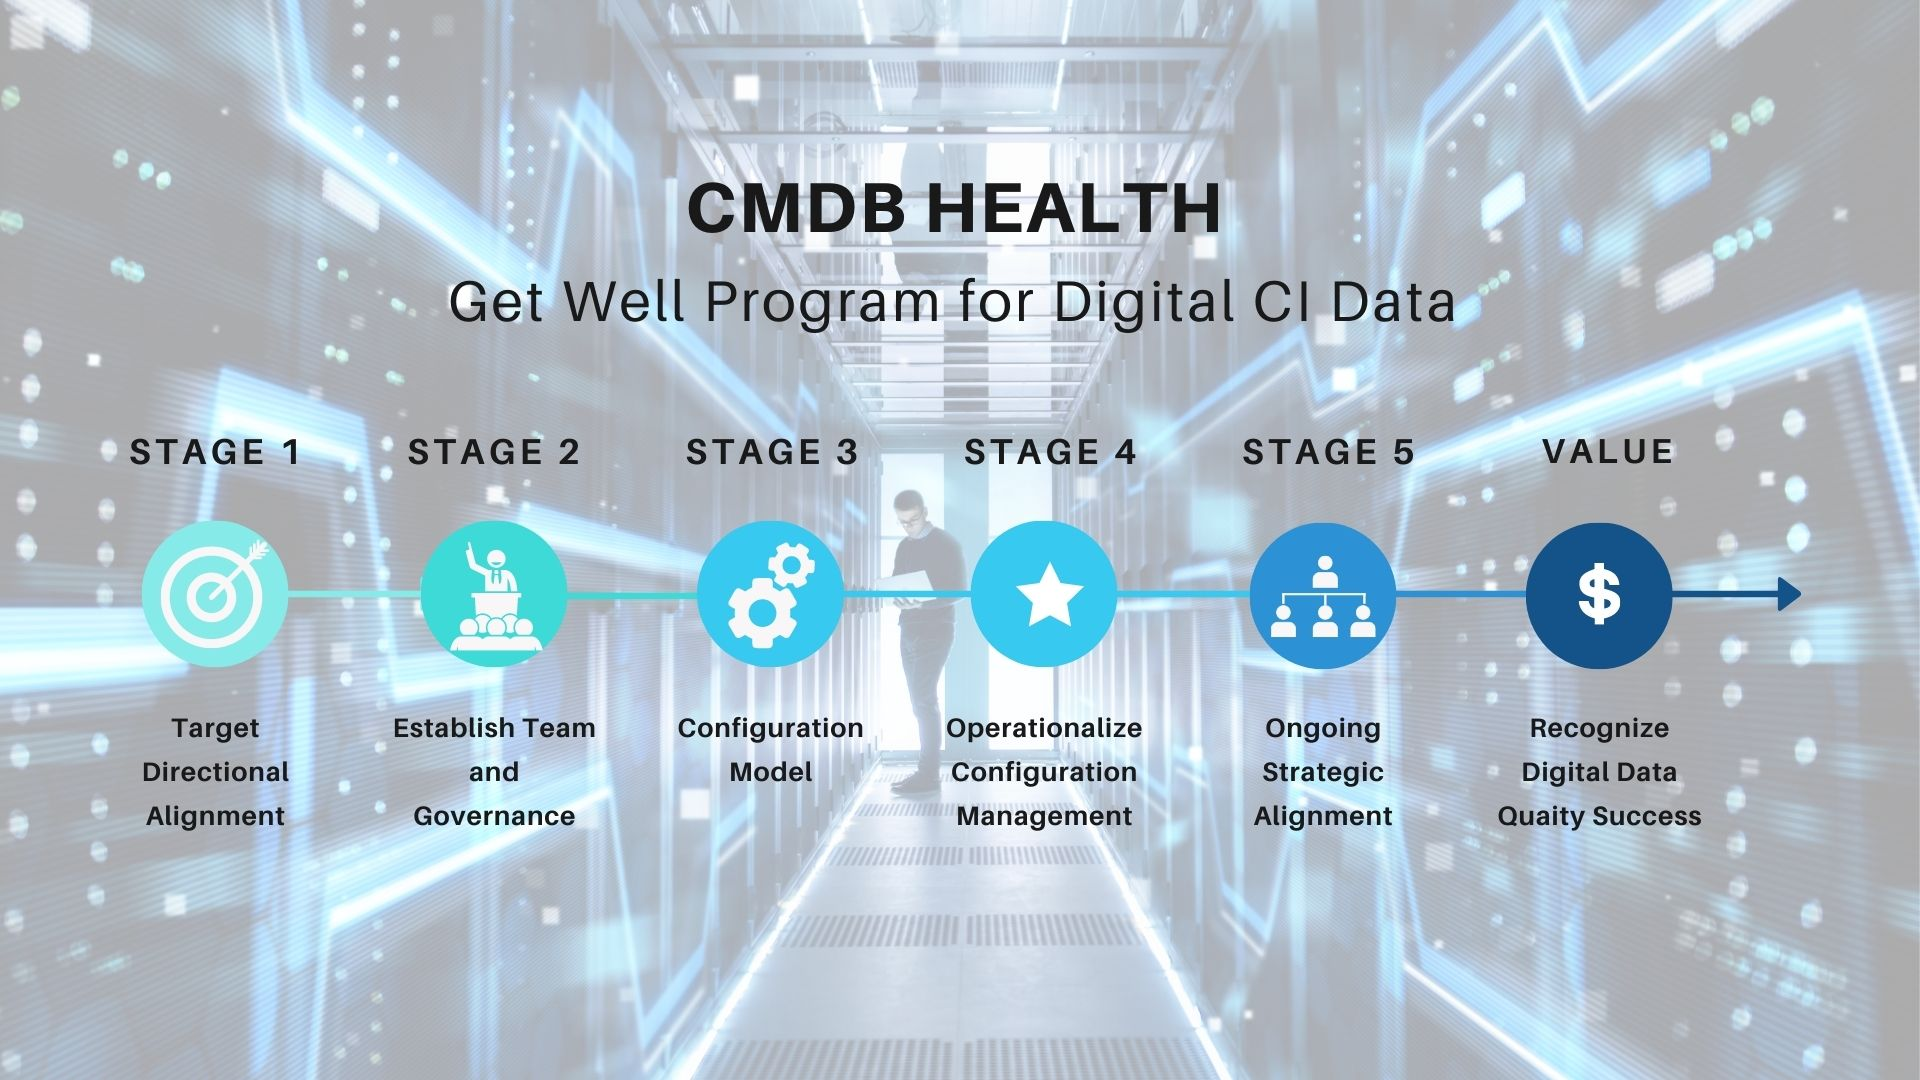 DevOps Pace, Digital Data Driven CMDB